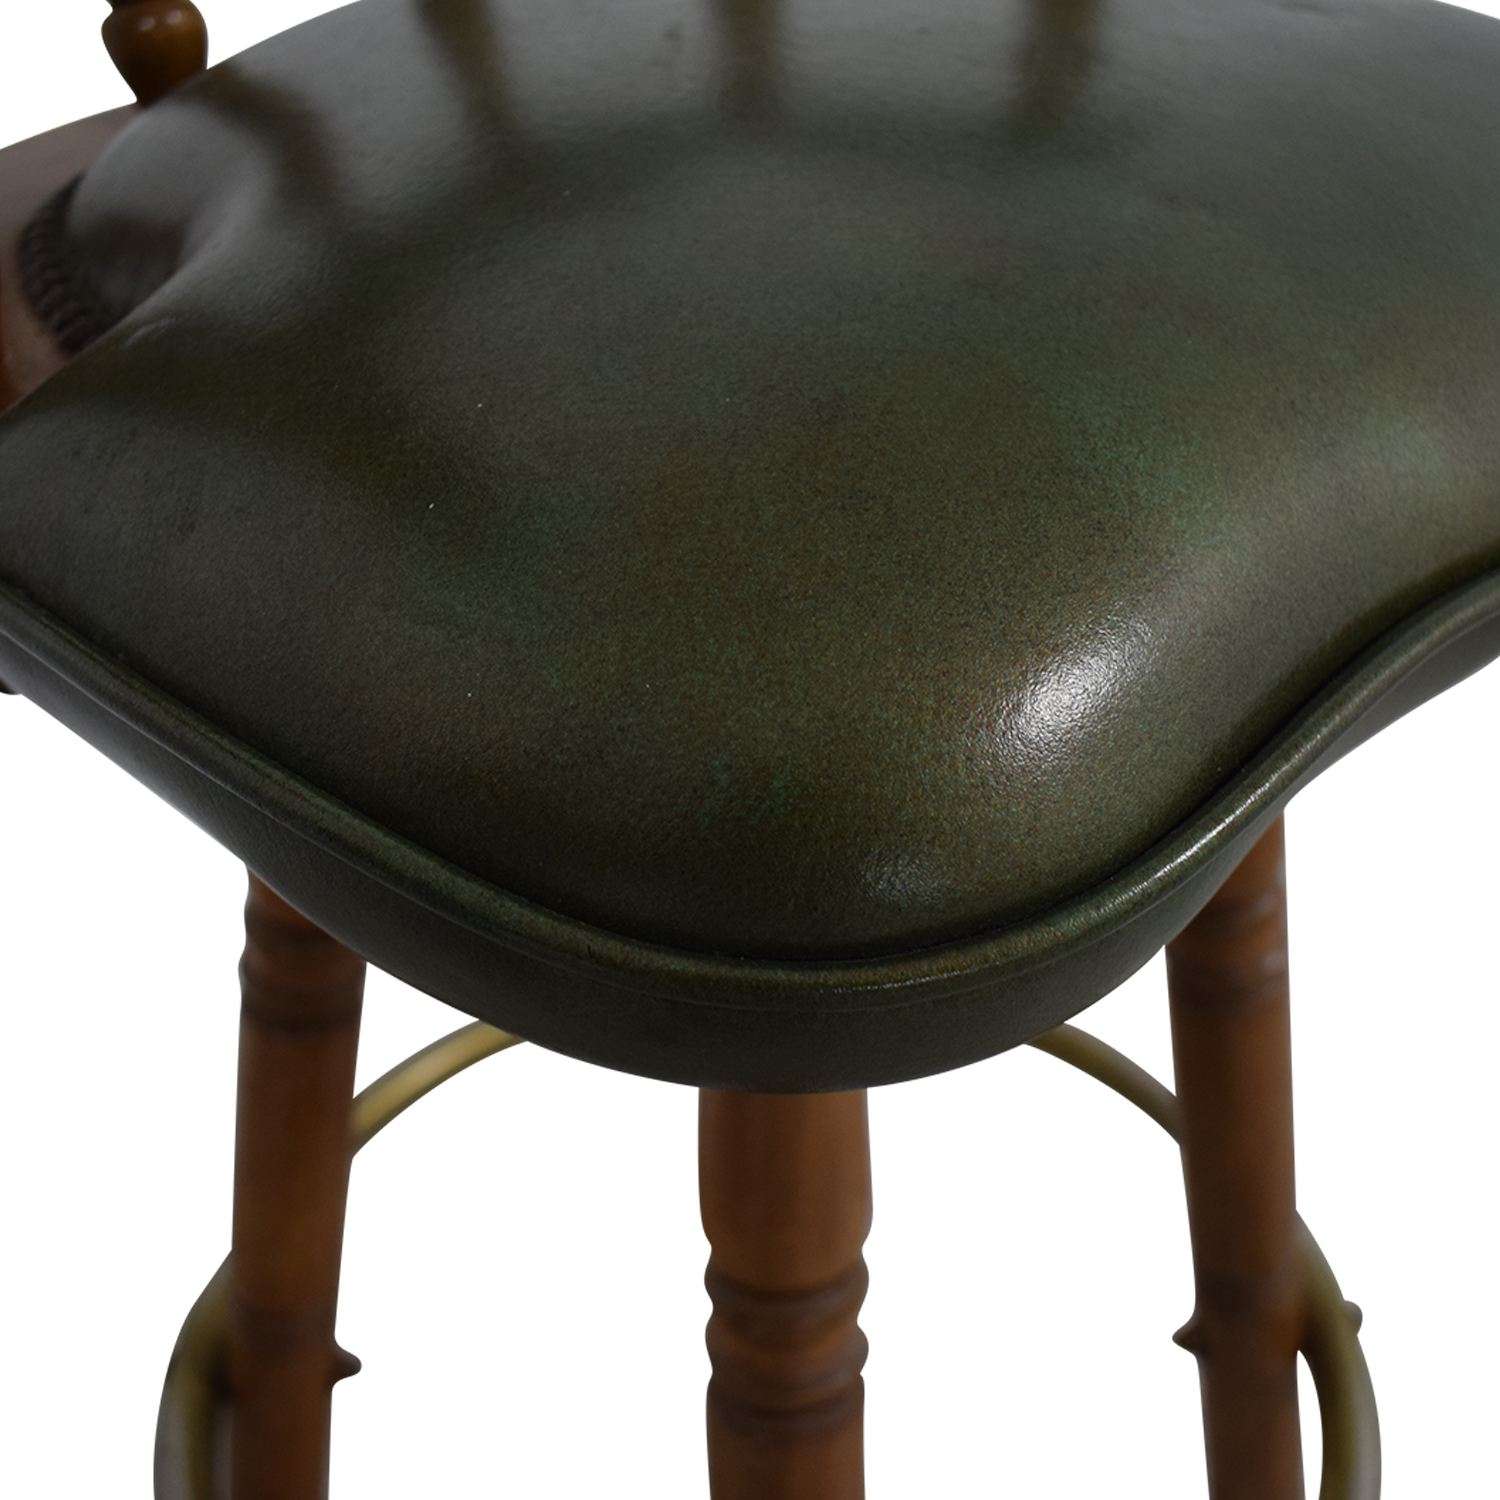 Vintage Green Leather Swivel Bar Stool Stools